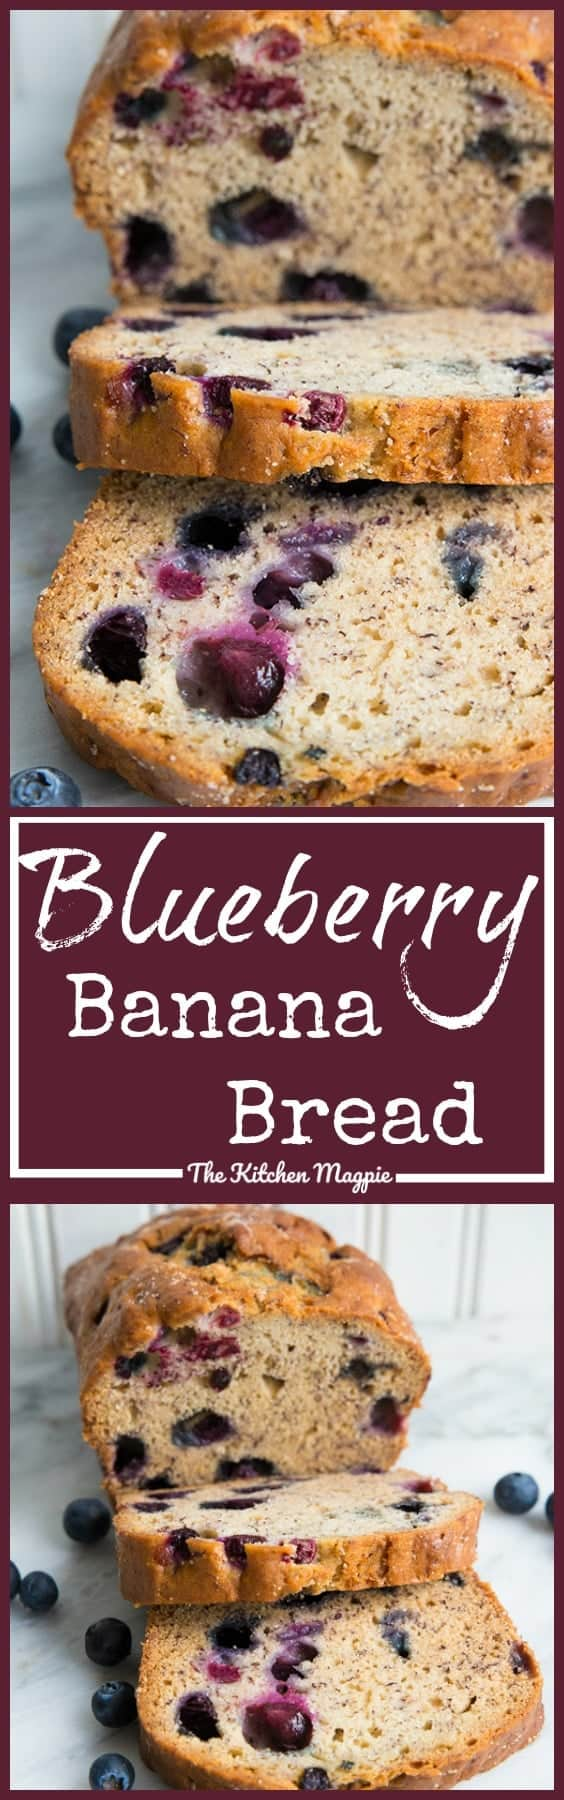 This fabulous Blueberry Banana Bread is another great way to use up those freezer bananas! ( if you're like me, you have a never ending stash of them!) Blueberries are a perfect match with banana, so why not bake them into banana bread?